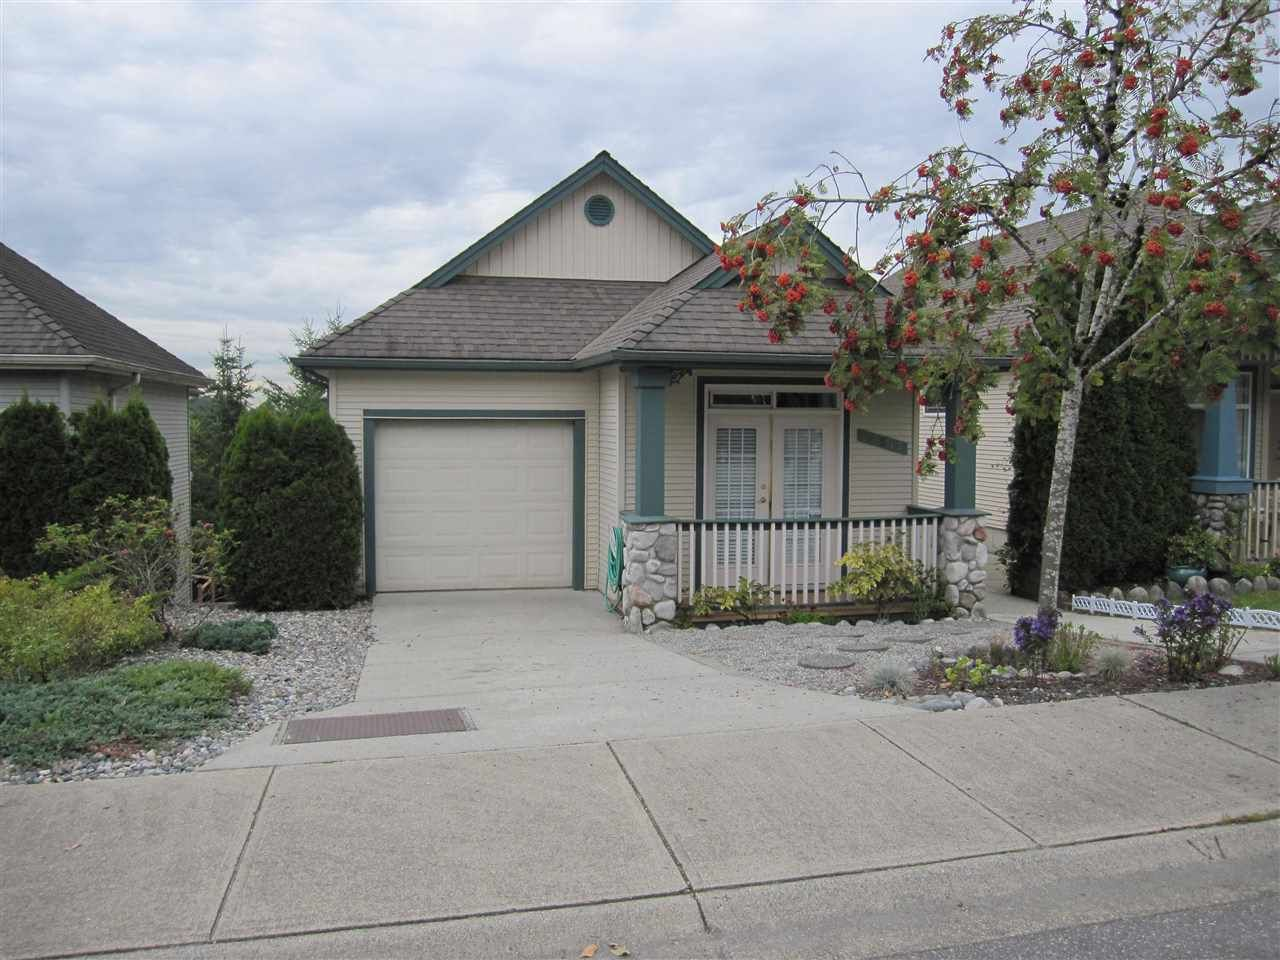 Main Photo: 11517 228 Street in Maple Ridge: East Central House for sale : MLS®# R2123978